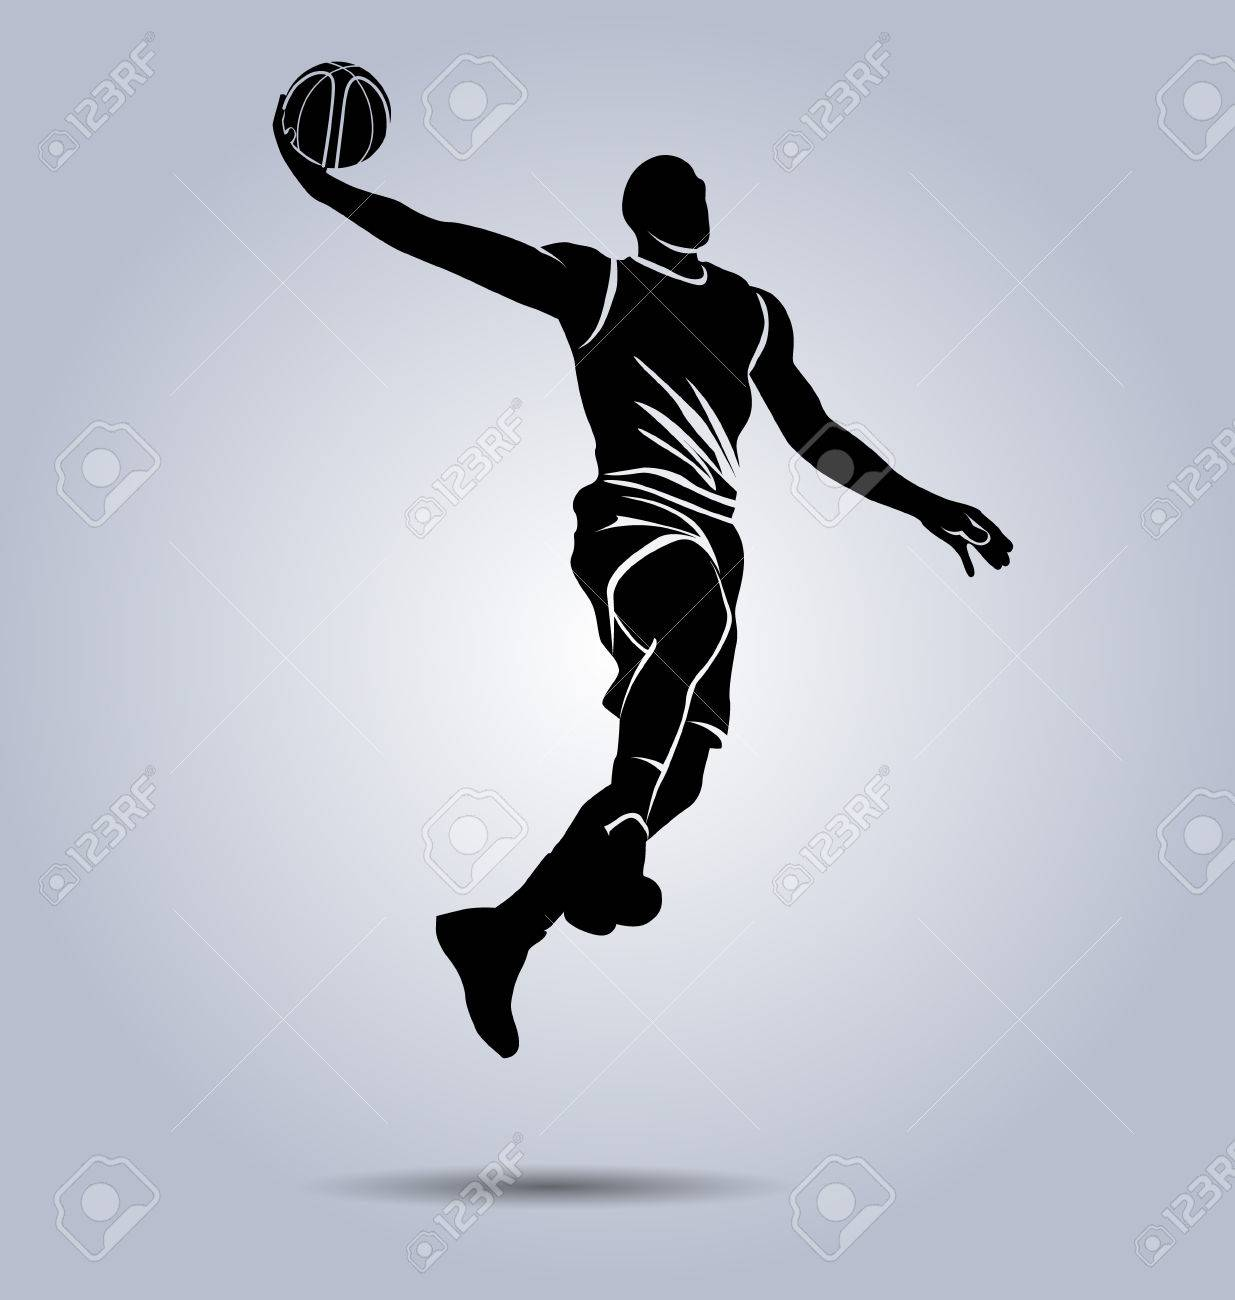 Silhouette of a basketball player - 86621171